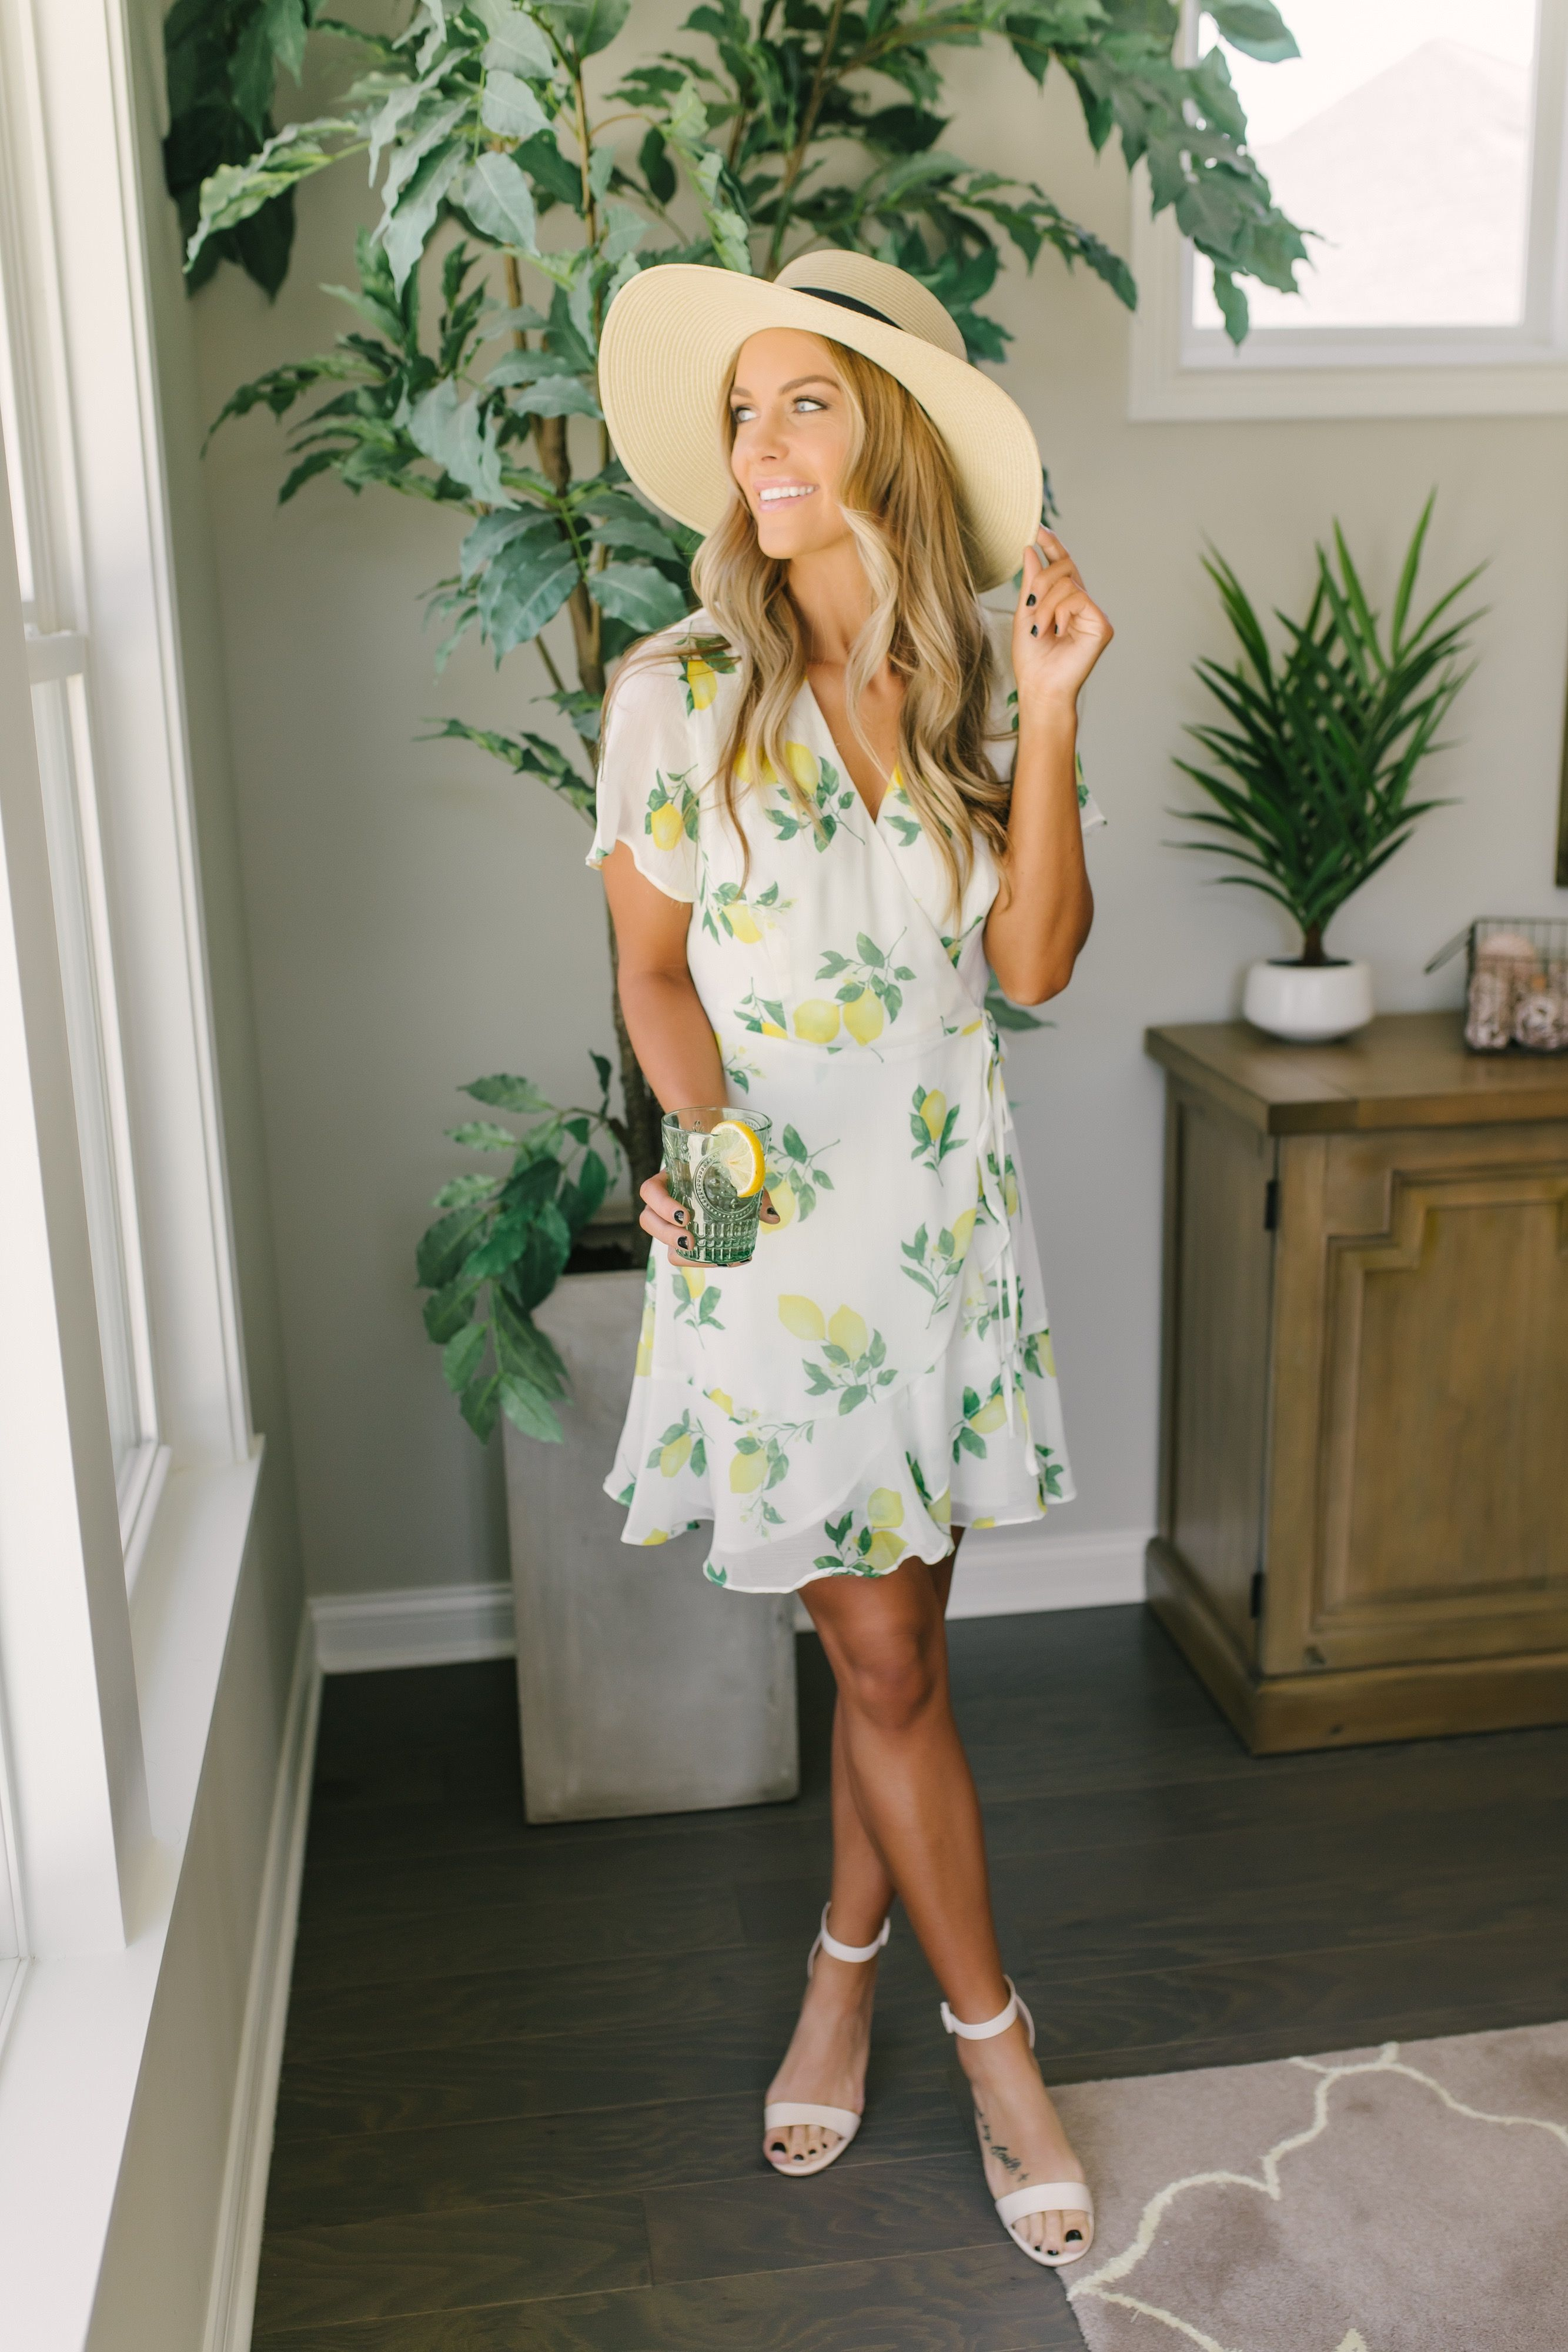 Shop Our Short Sleeve Lemon Wrap Dress In Off White Multi Pair With High Heels And A Clutch For A Chic Look Always Free Wrap Dress Print Chiffon Dress Dresses [ 4000 x 2667 Pixel ]